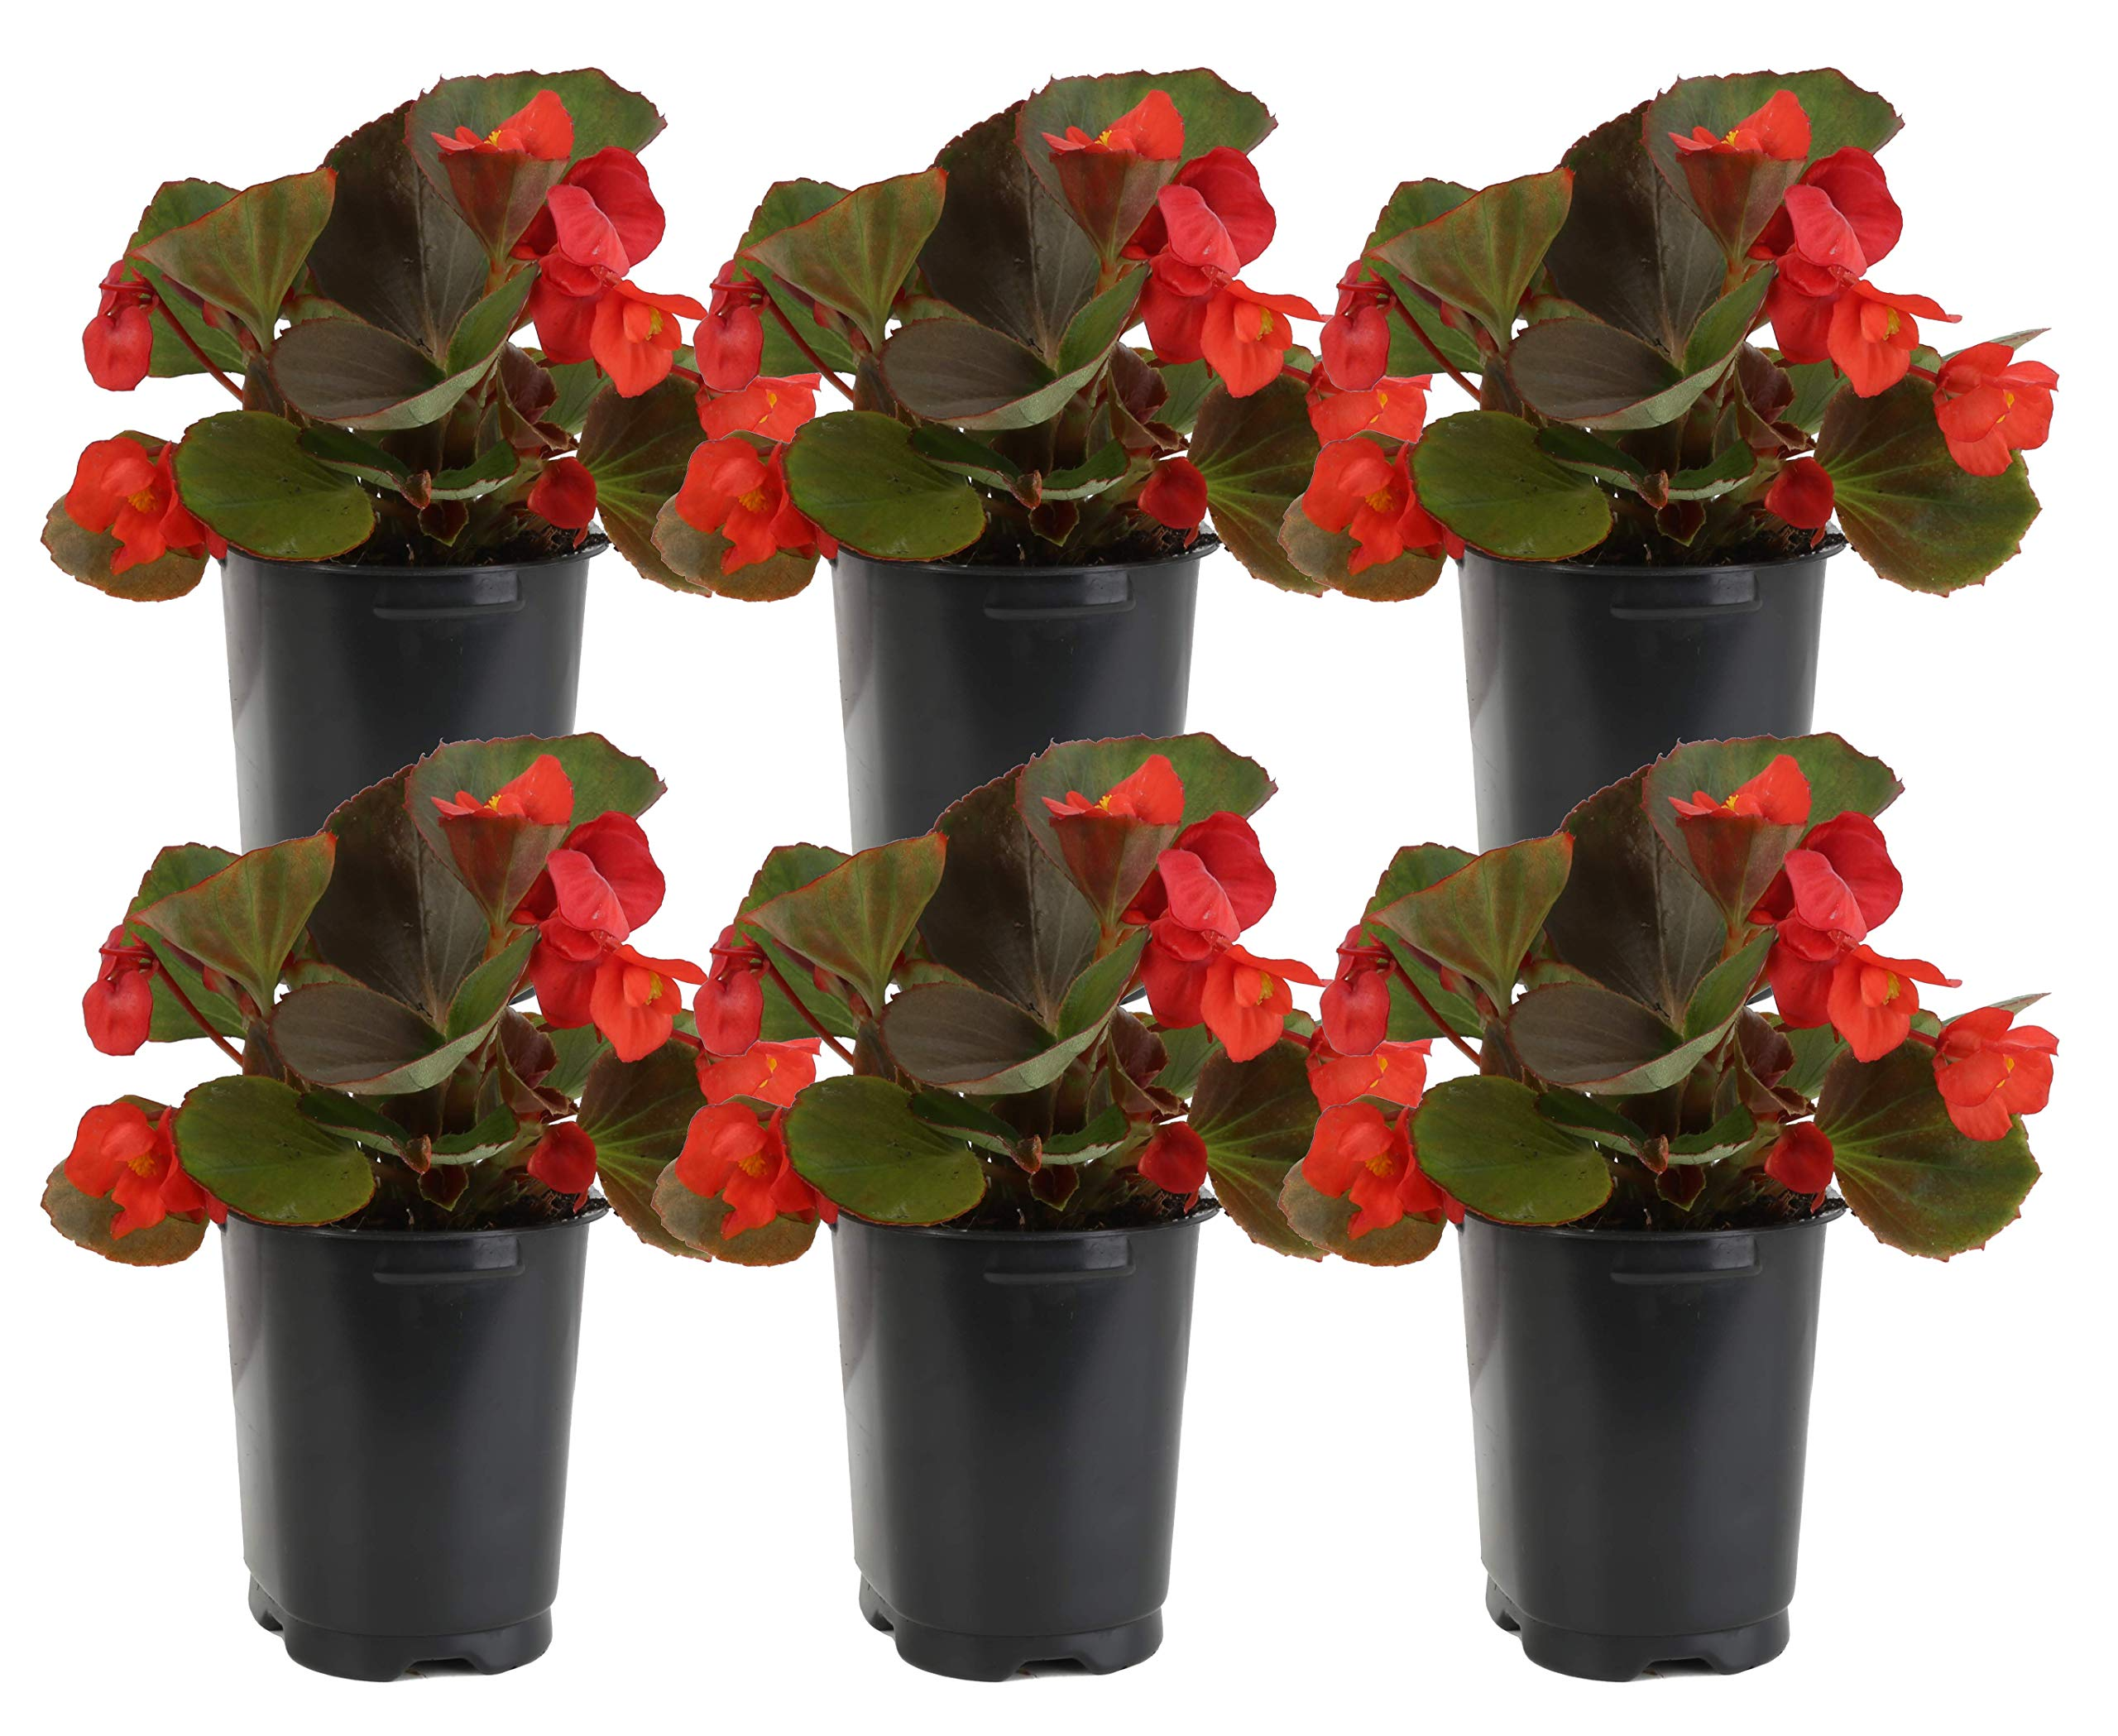 Costa Farms Begonia Live Outdoor Plant 1 PT Grower's Pot, 6-Pack, Red